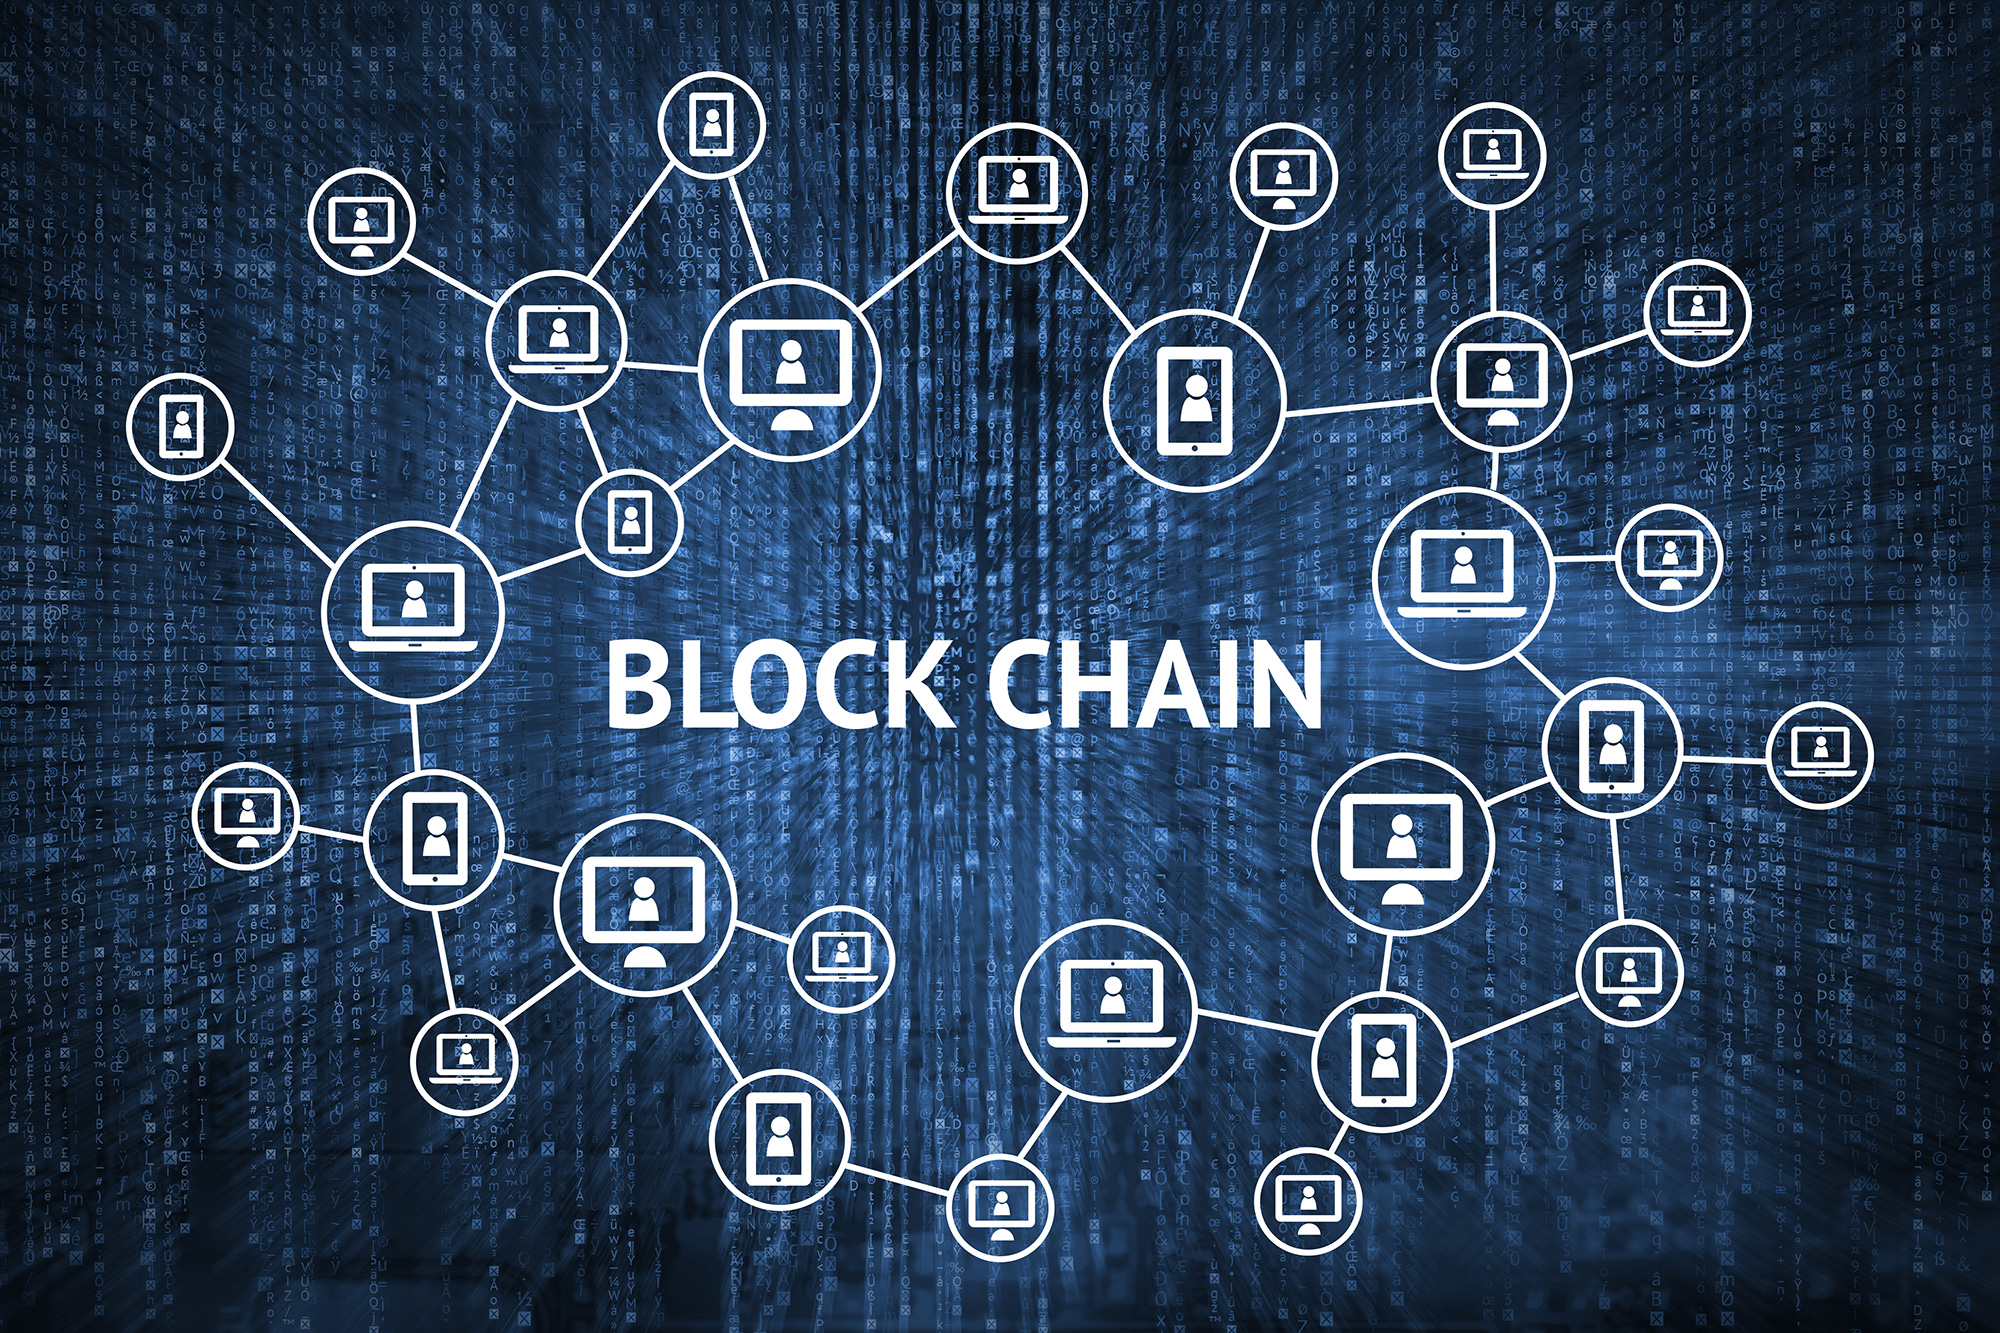 Block Chain Graphic